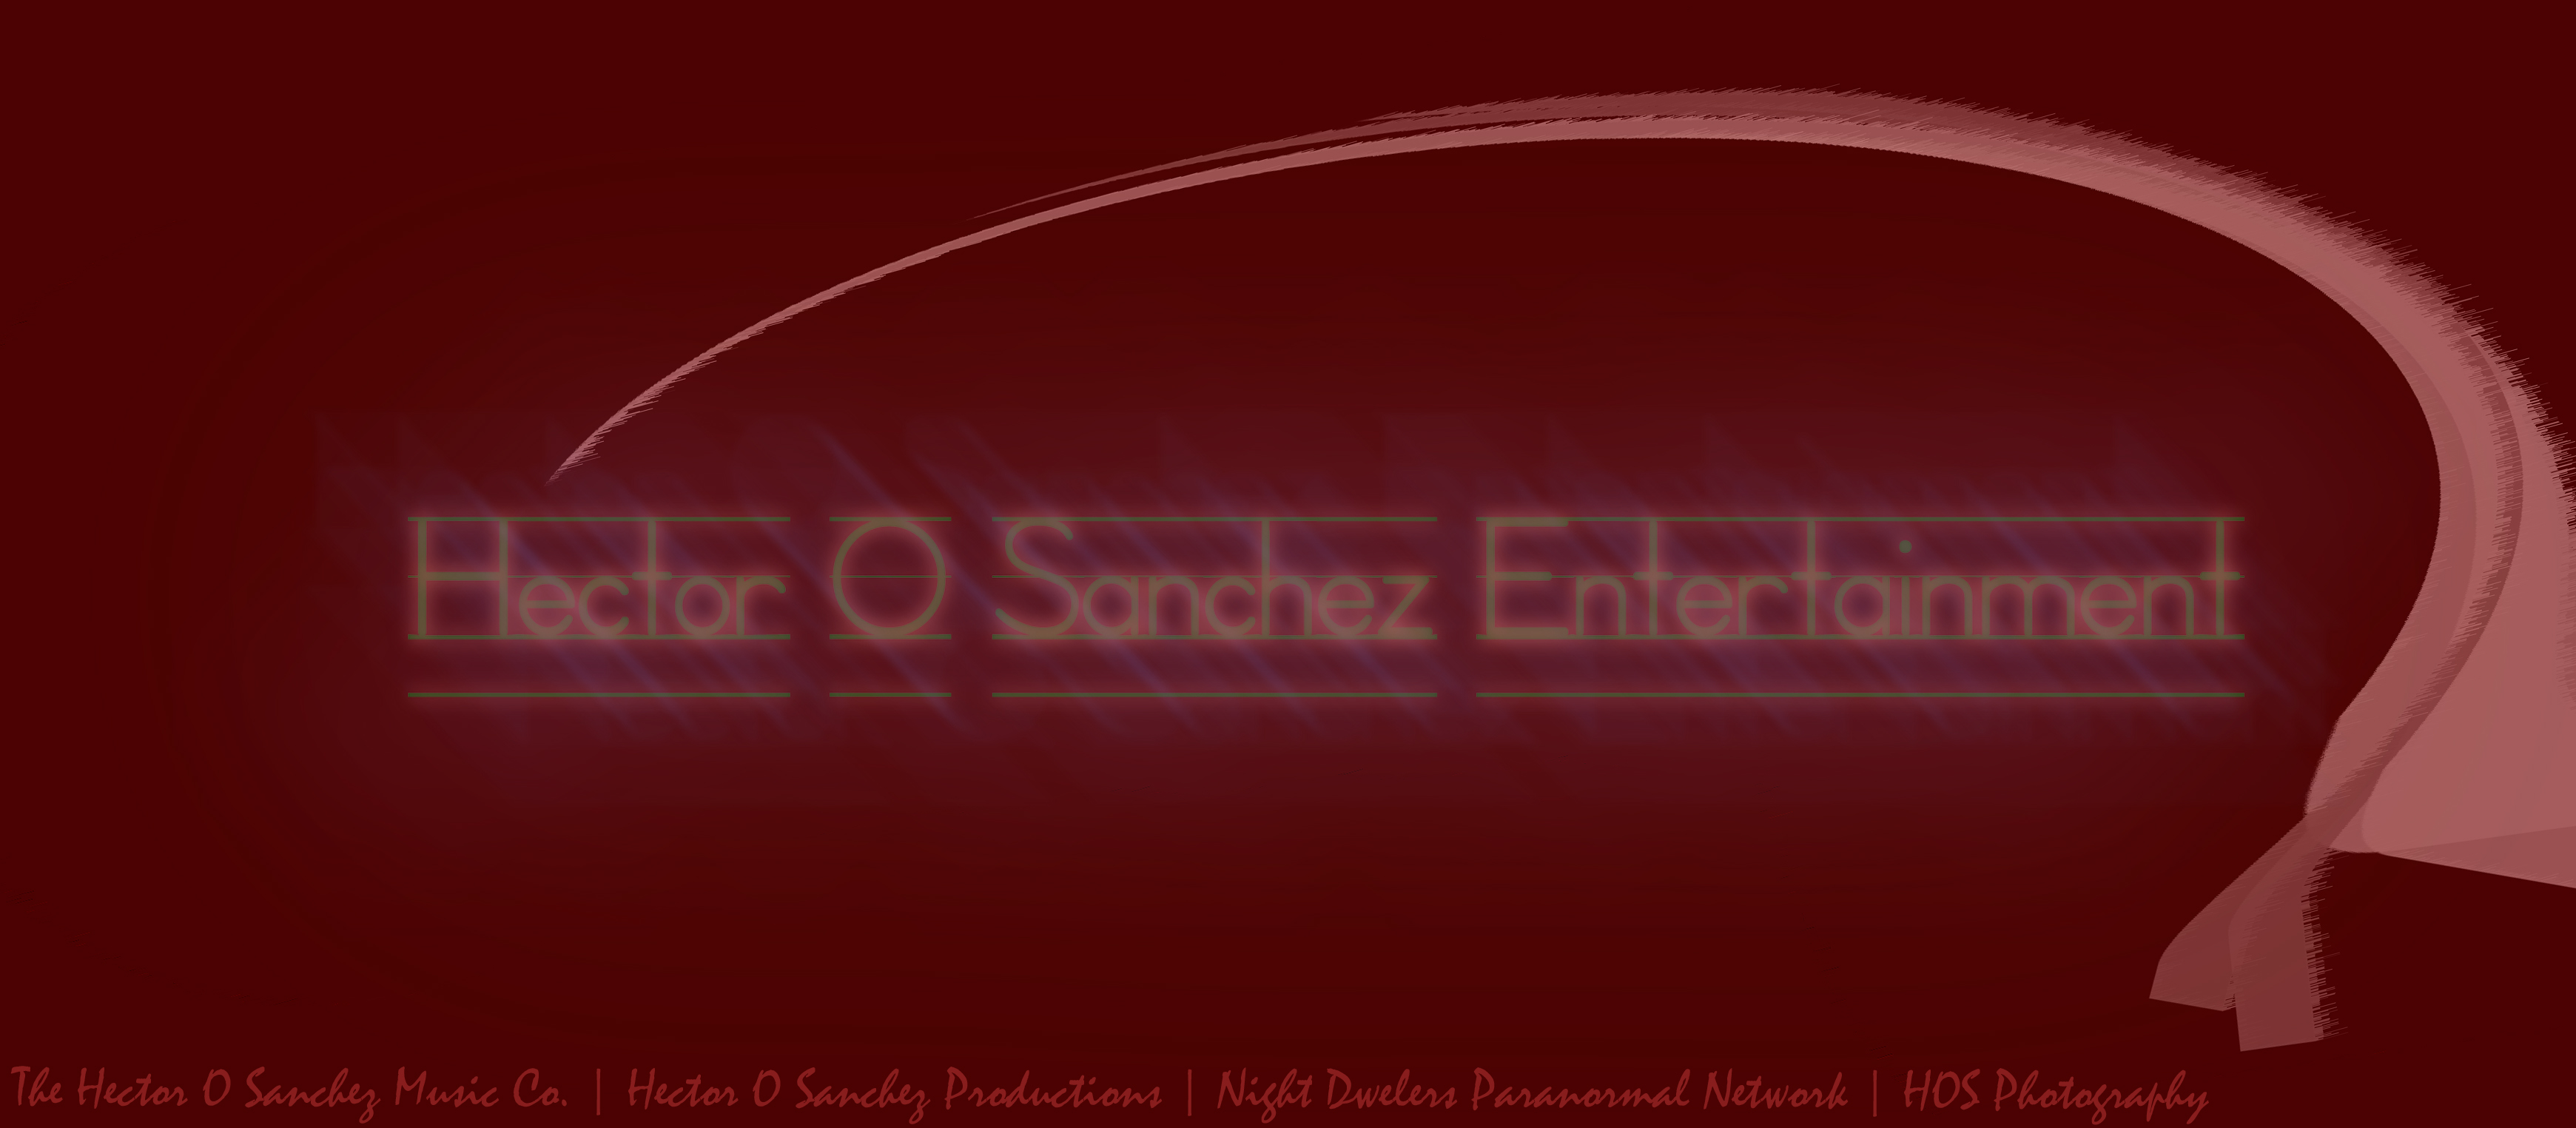 Hector O Sanchez Entertainment